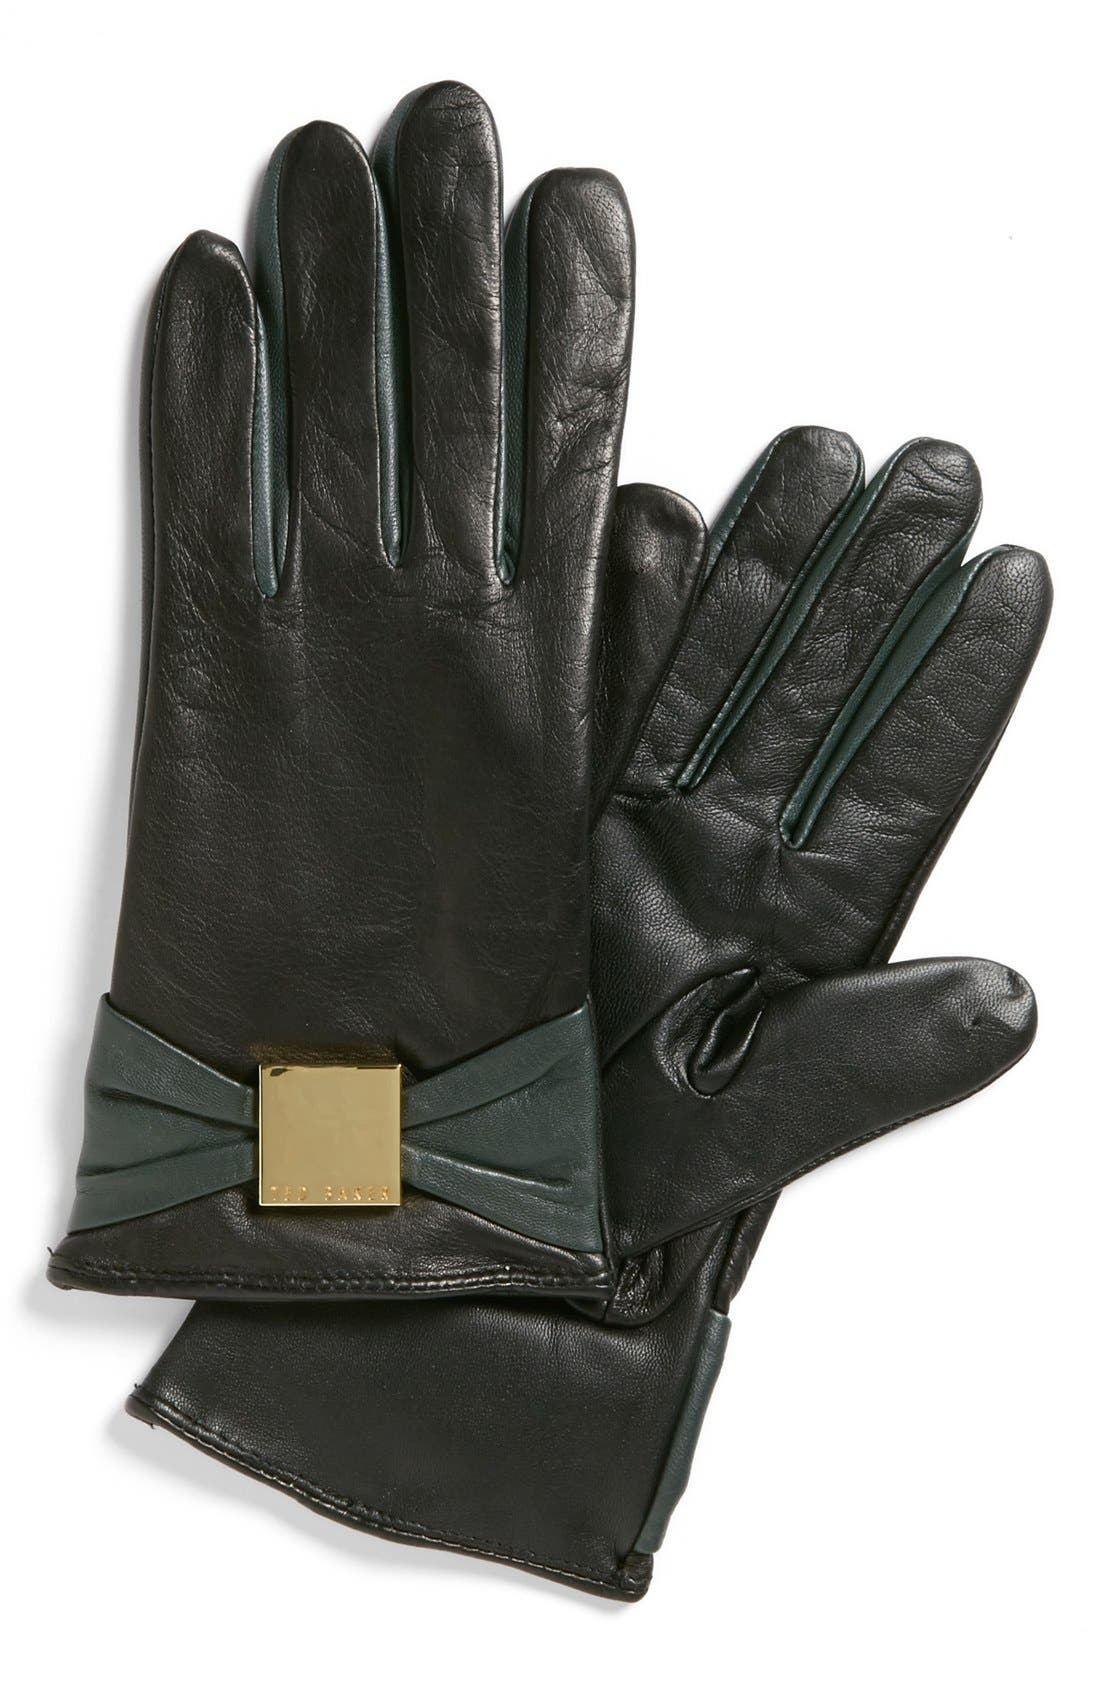 Alternate Image 1 Selected - Ted Baker London 'Bow' Leather Tech Gloves